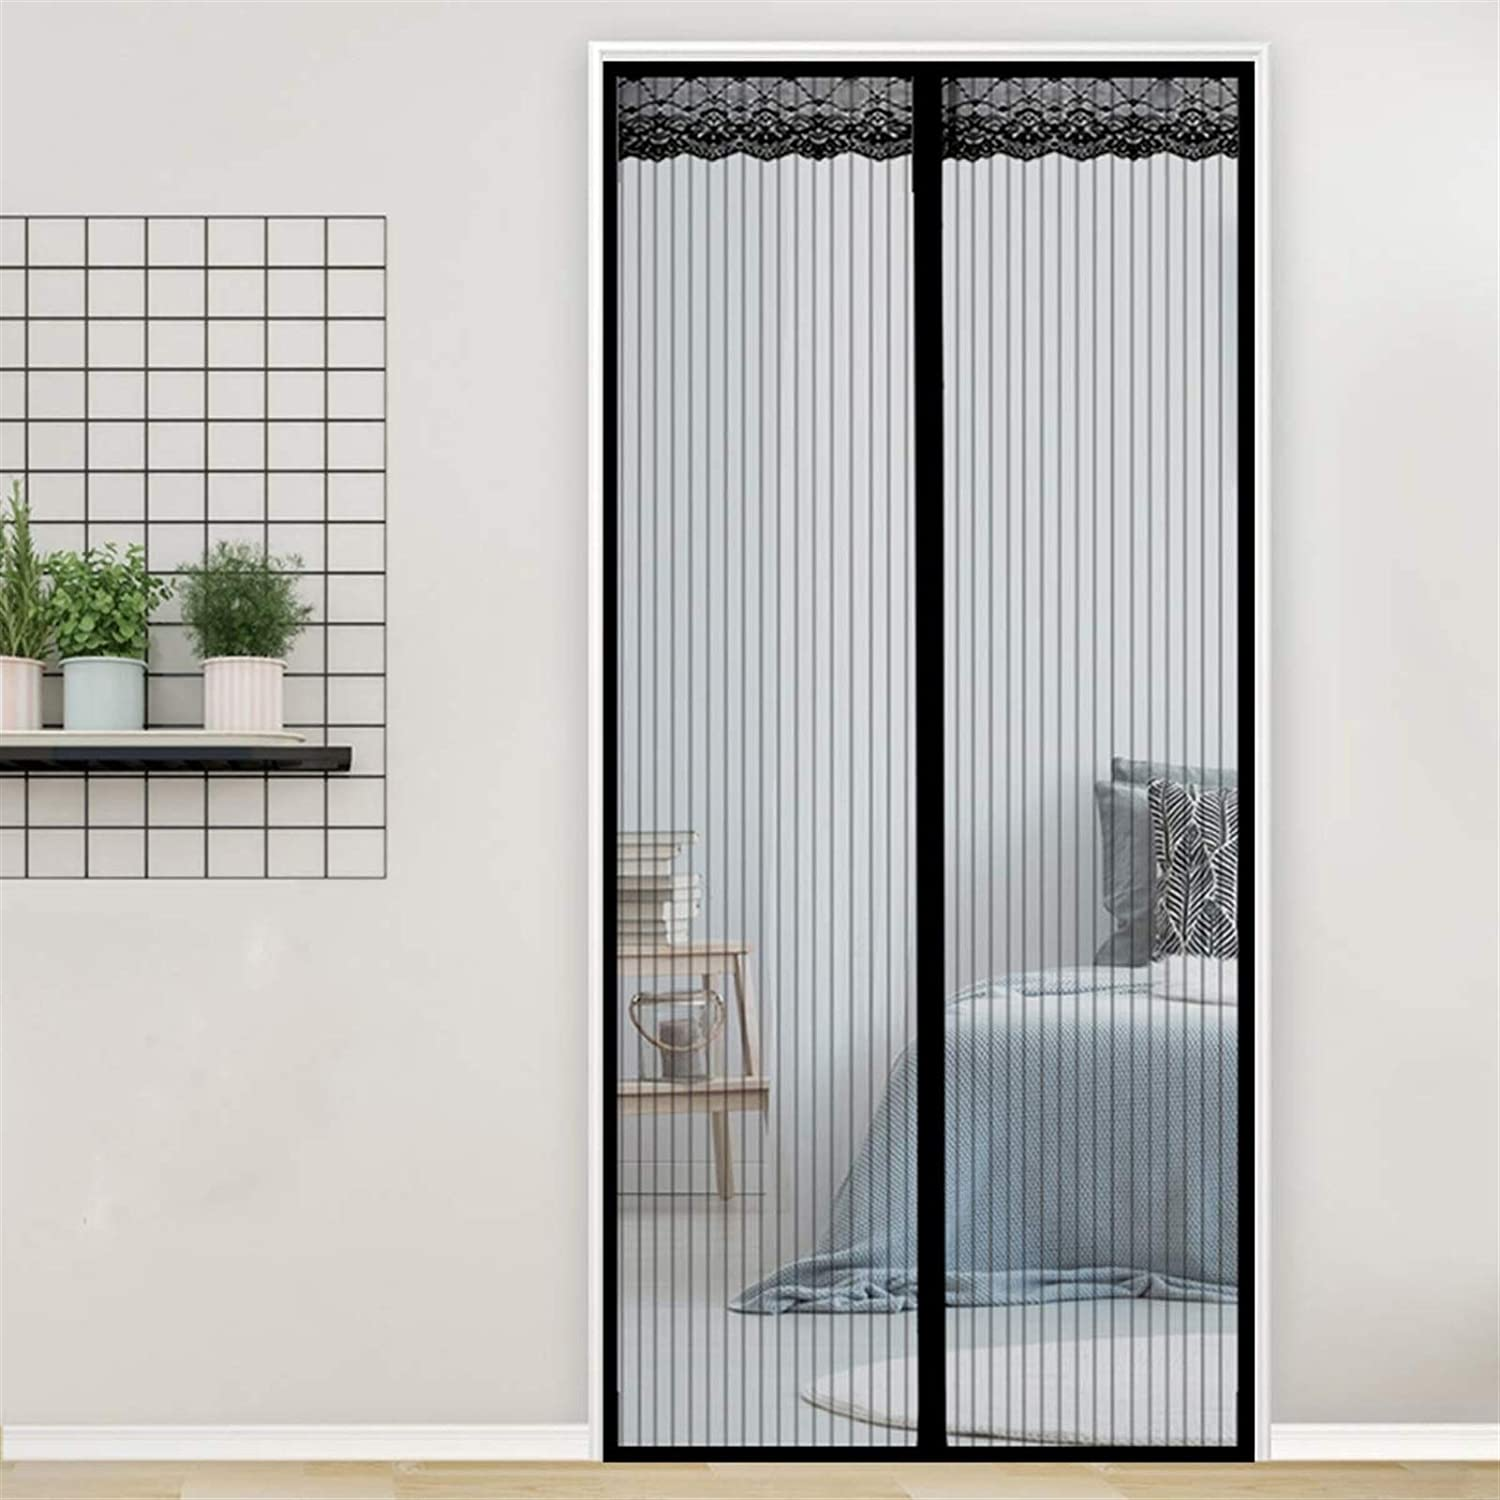 THAIKER Magnetic Fly Screen Door Keep Max 70% OFF Inse 87x83inch Cash special price 220x210cm